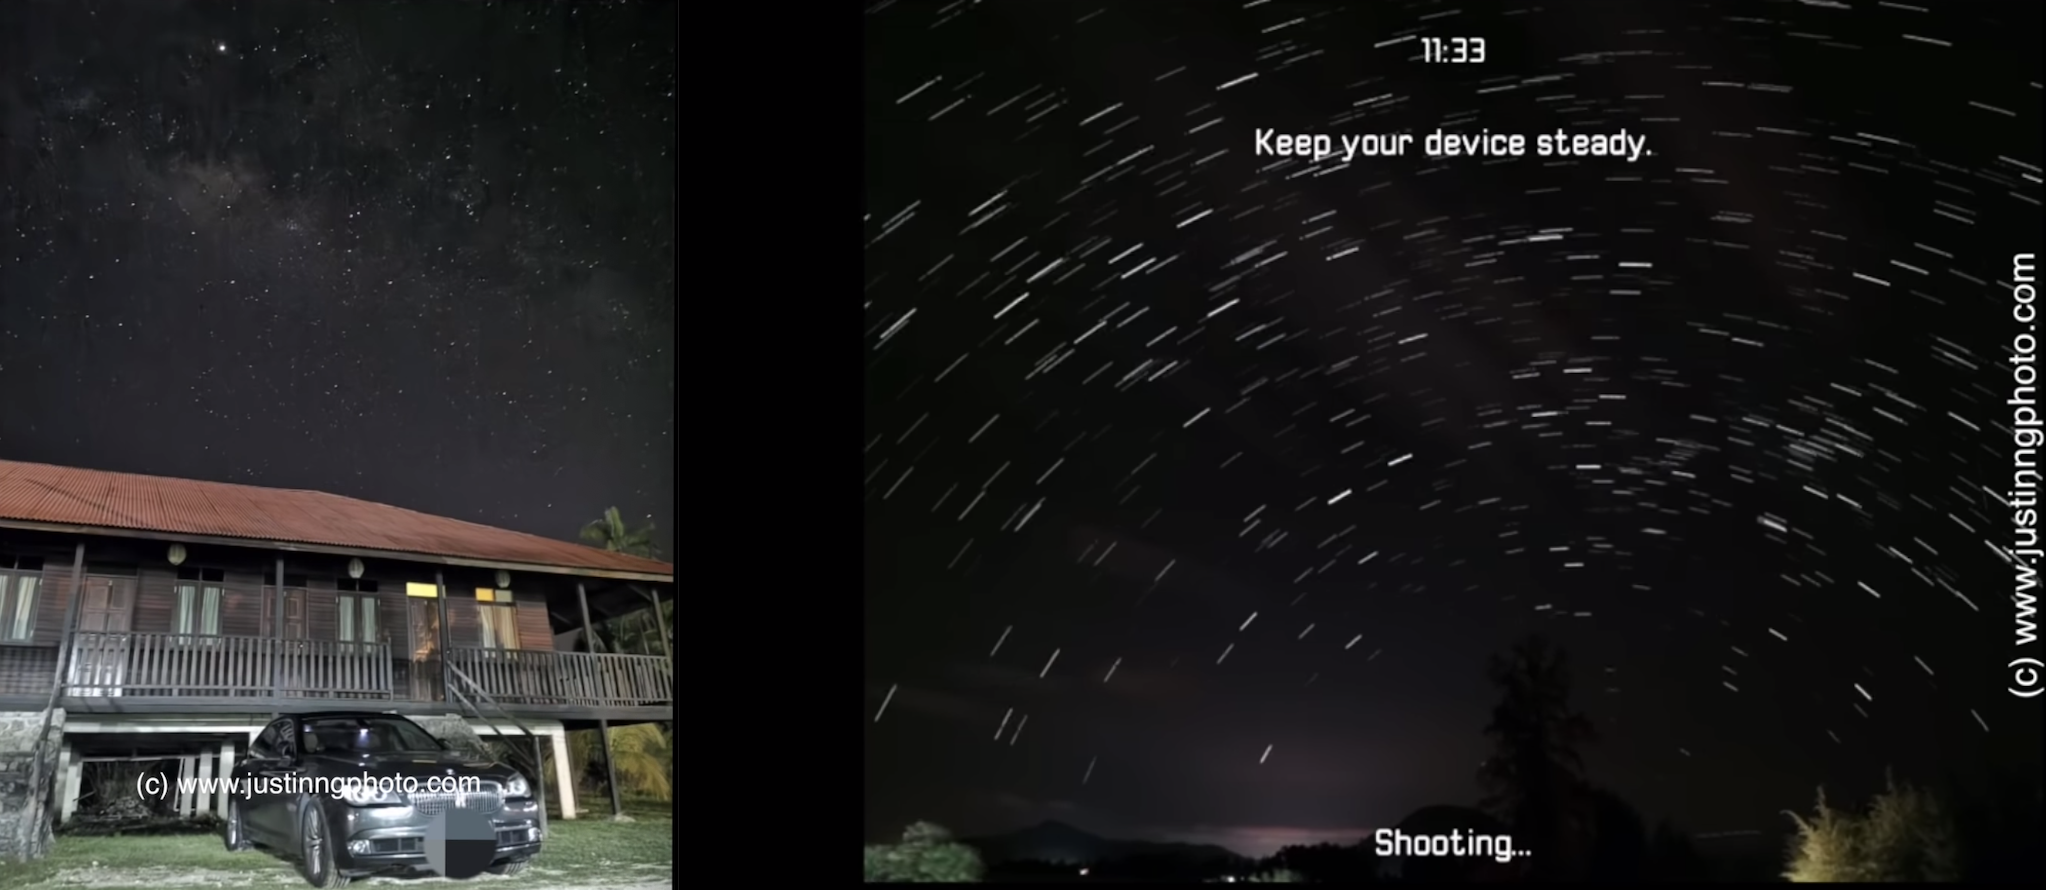 Latest Tech News: 'No DSLR, no tripod, no problem,' Huawei P30 Pro powerful enough to capture Milky Way galaxy - The Independent thumbnail